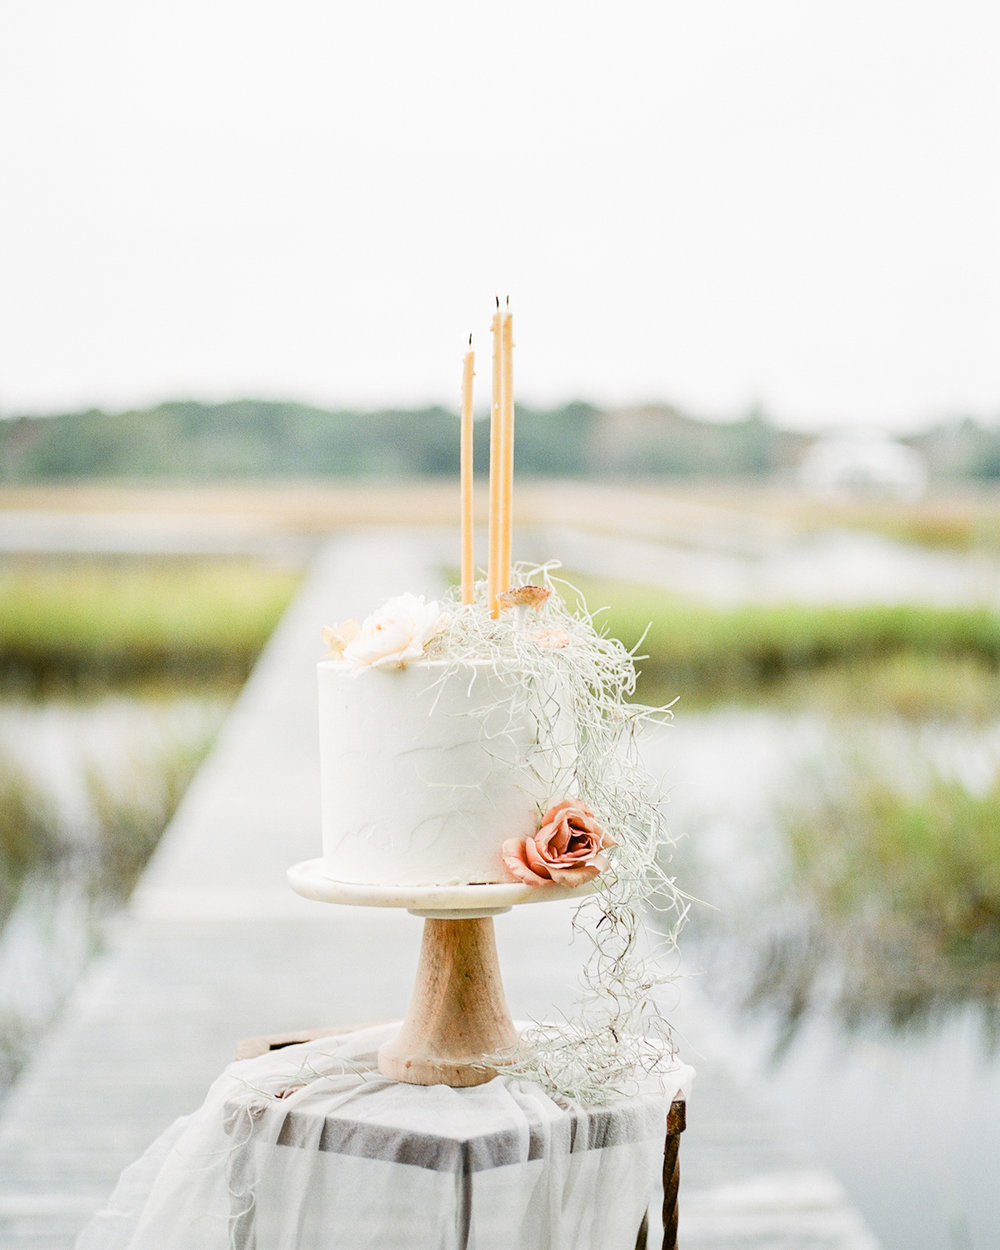 AKP_Film_wedding_photographer_los_angeles_river_oaks_south_carolina_romantic-16.jpg